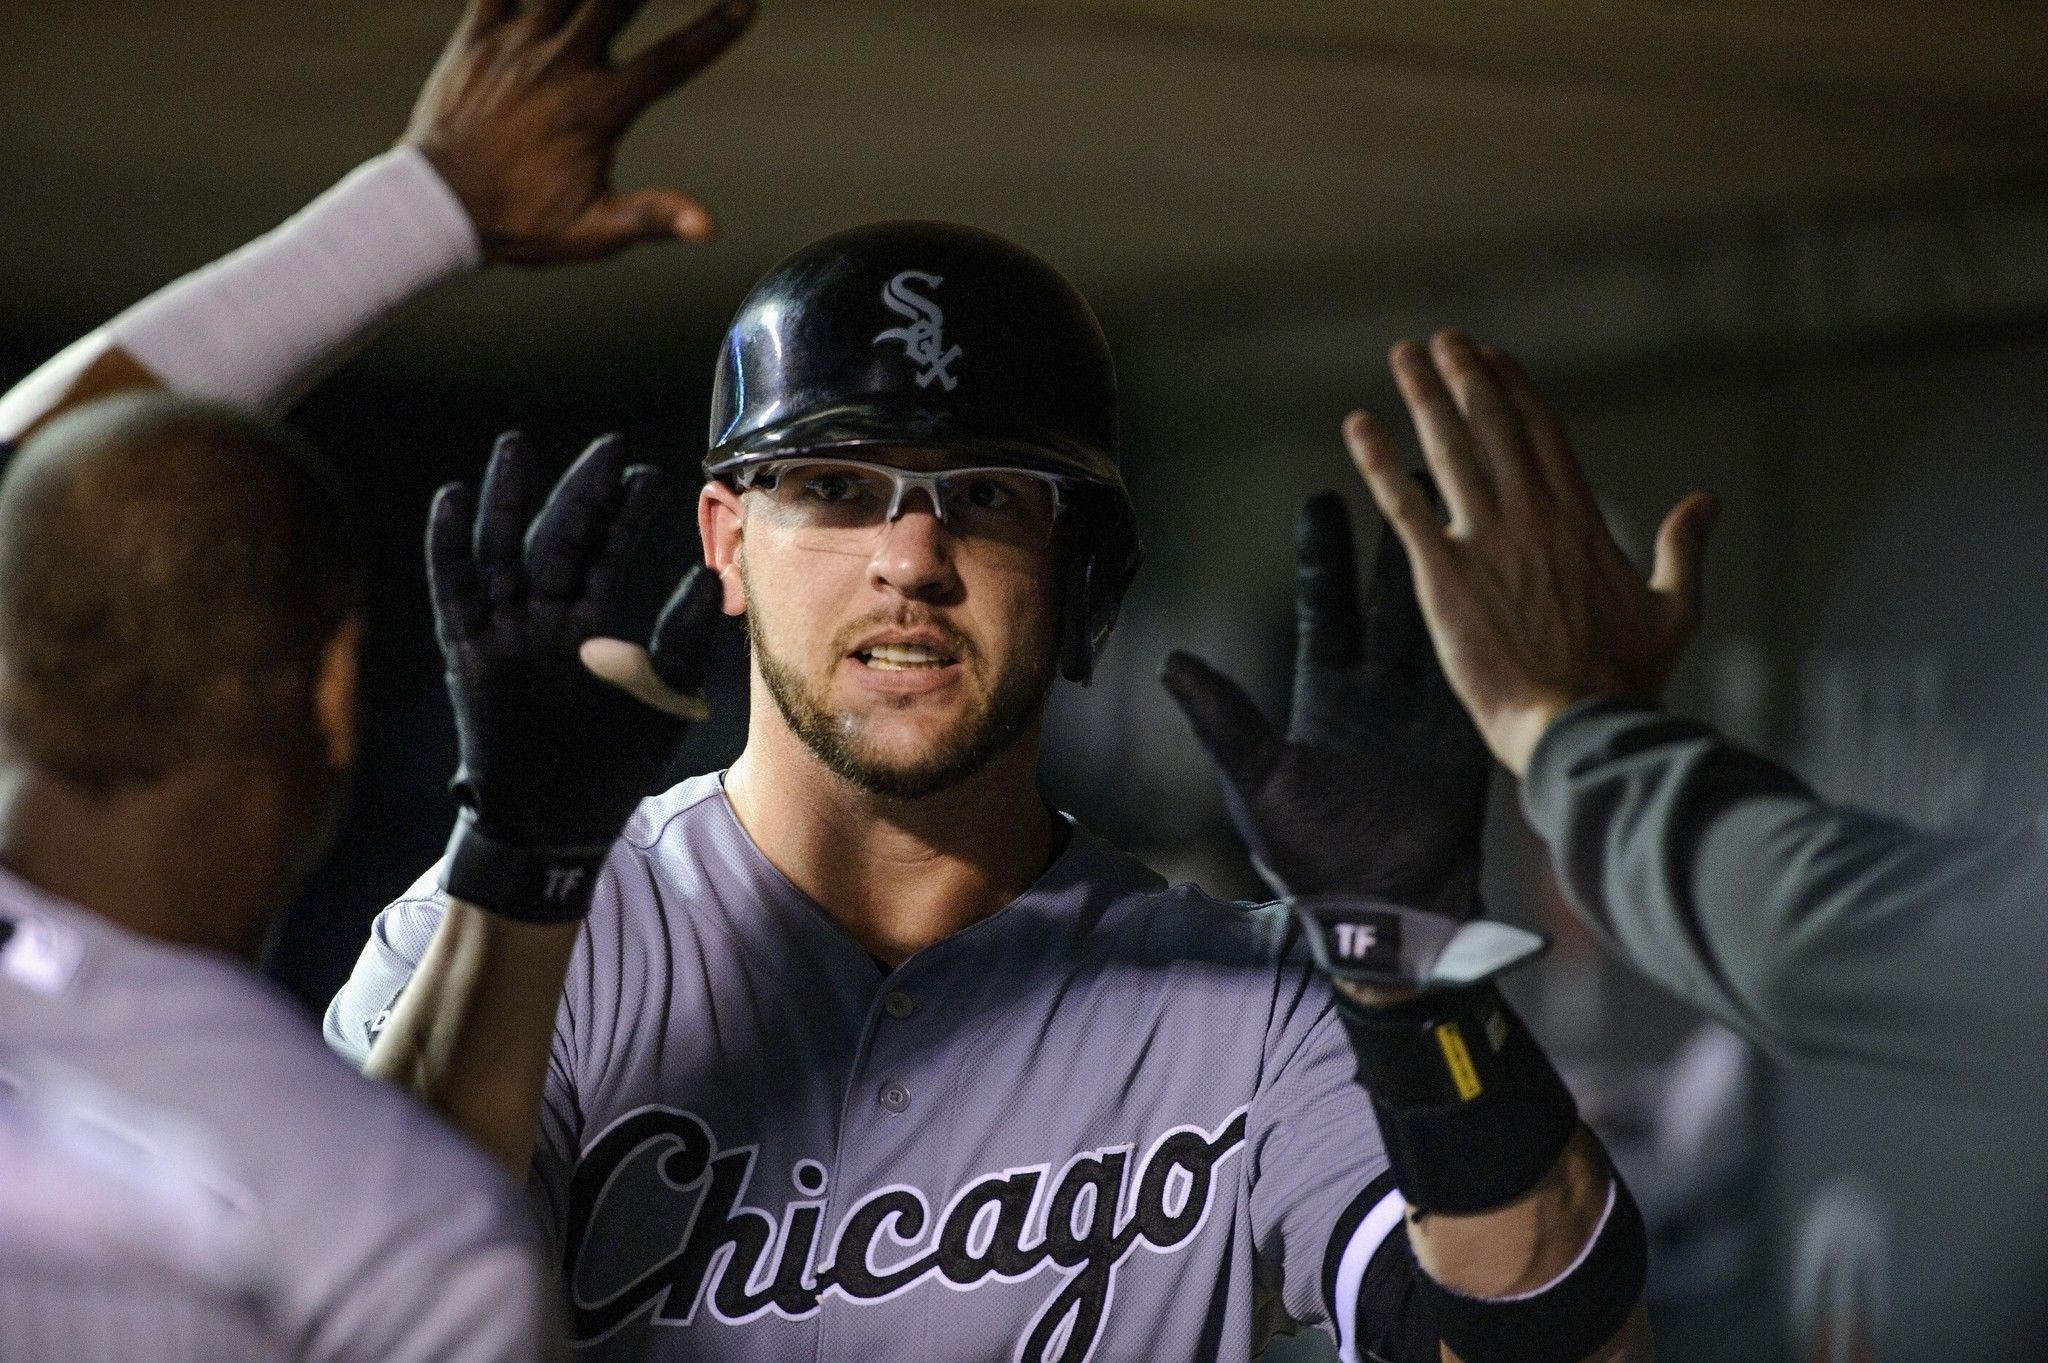 Tyler flowers batting surge is eye opening baseball chicago whether its the glasses he has been wearing recently or adjustments he has made white sox catcher has been on tear mightylinksfo